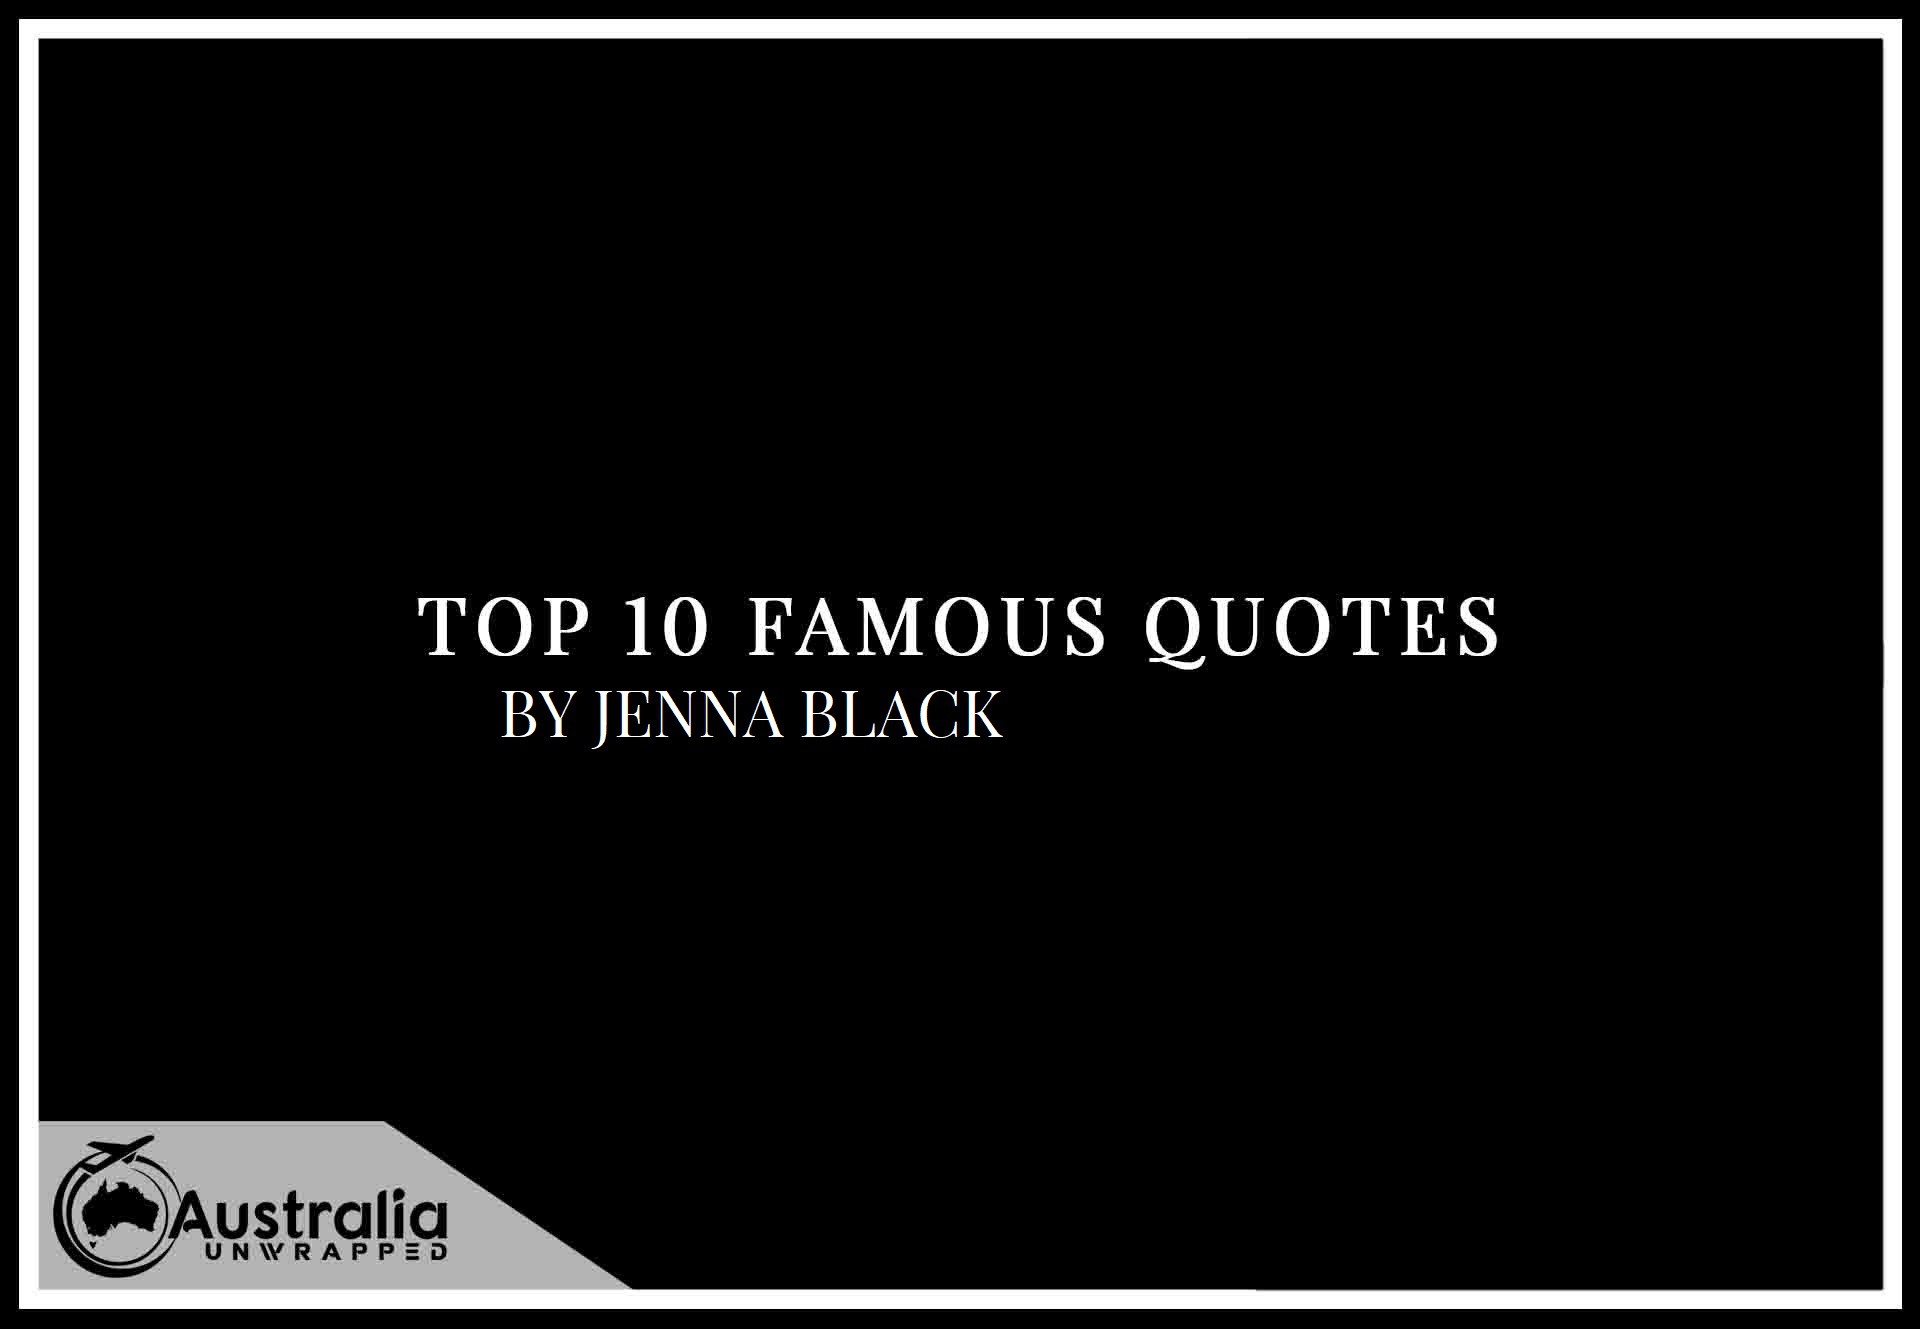 Top 10 Famous Quotes by Author Jenna Black